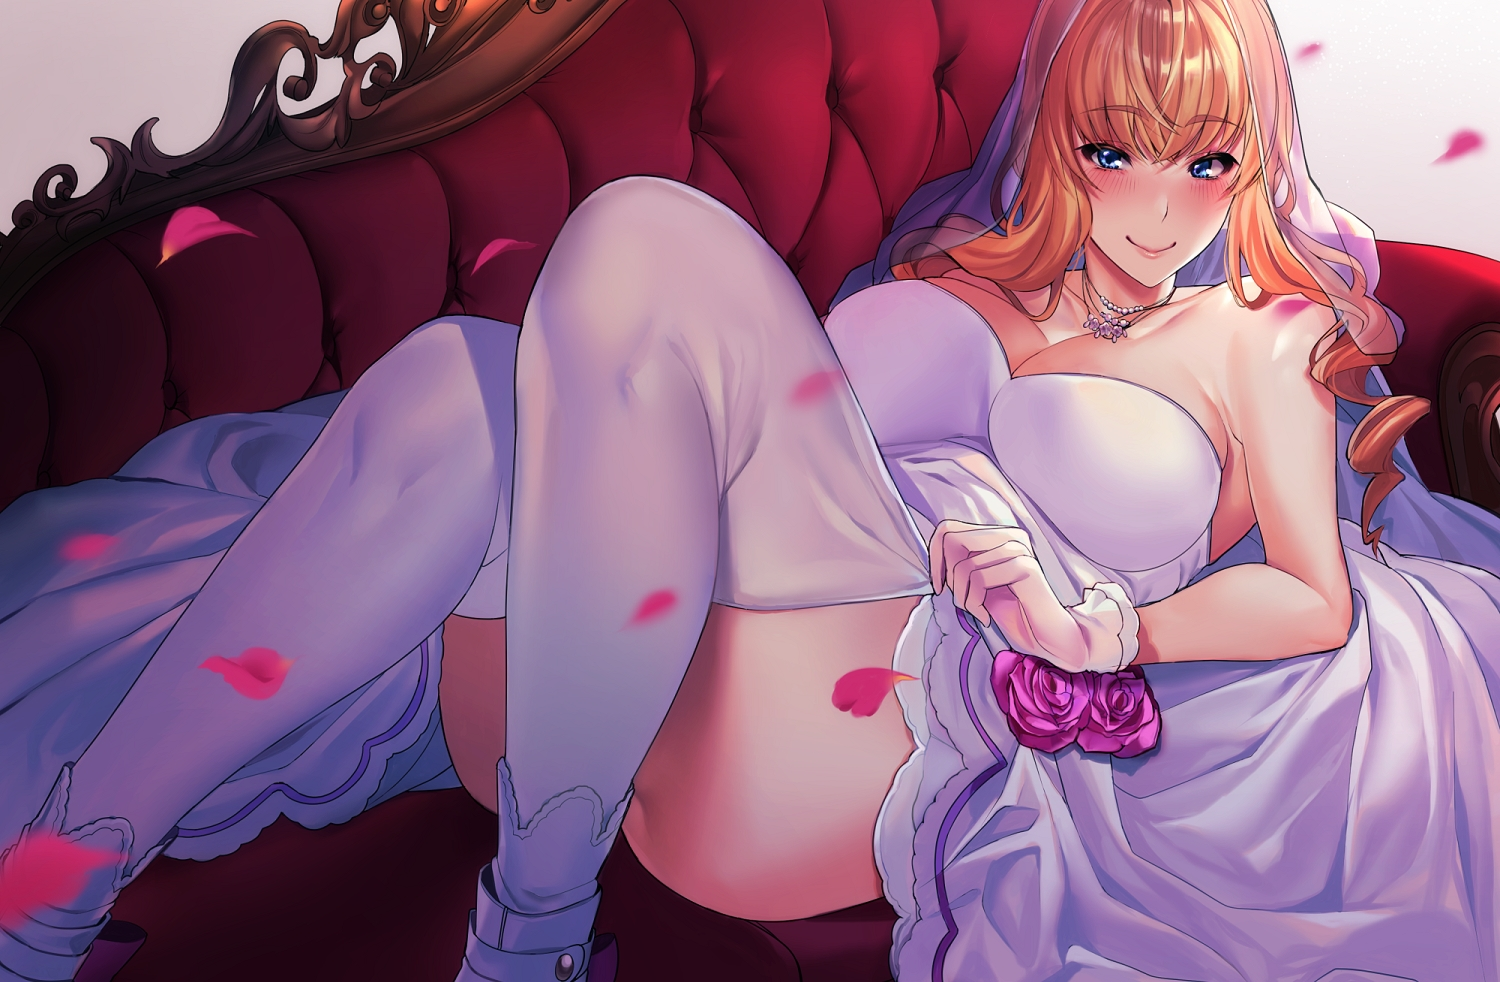 blue_eyes blush breasts cleavage couch dress gloves headdress long_hair macross macross_frontier necklace orange_hair petals raxxx25_3 sheryl_nome thighhighs wedding_attire